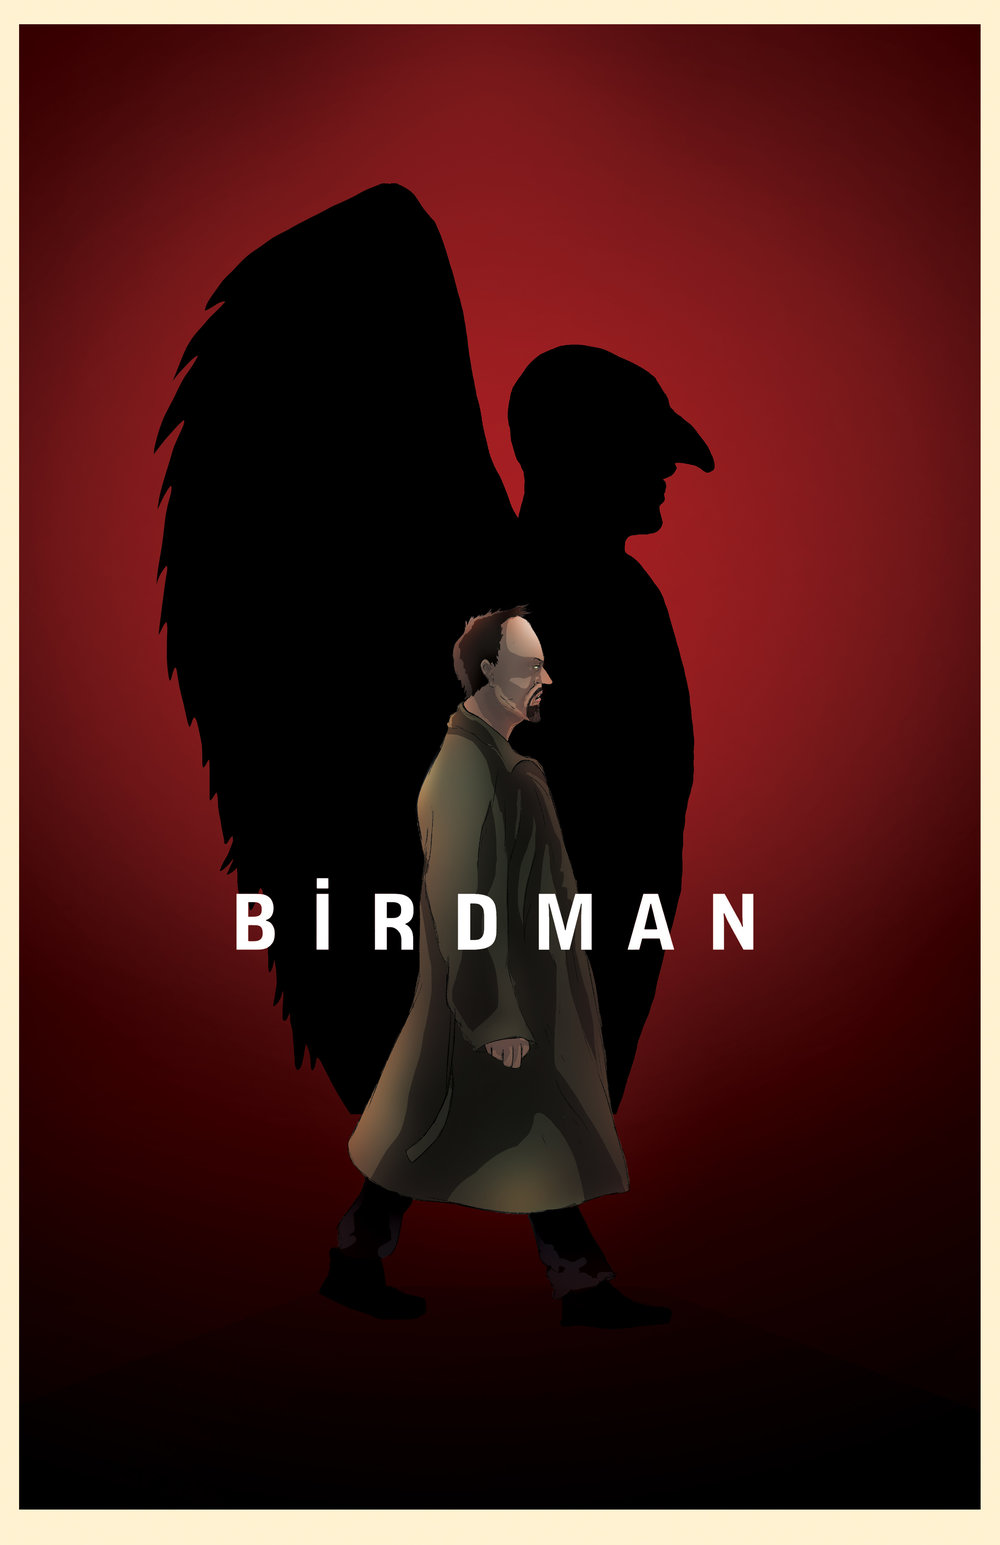 Birdman (The Unexpected Virtue of Ignorance) - Film Poster